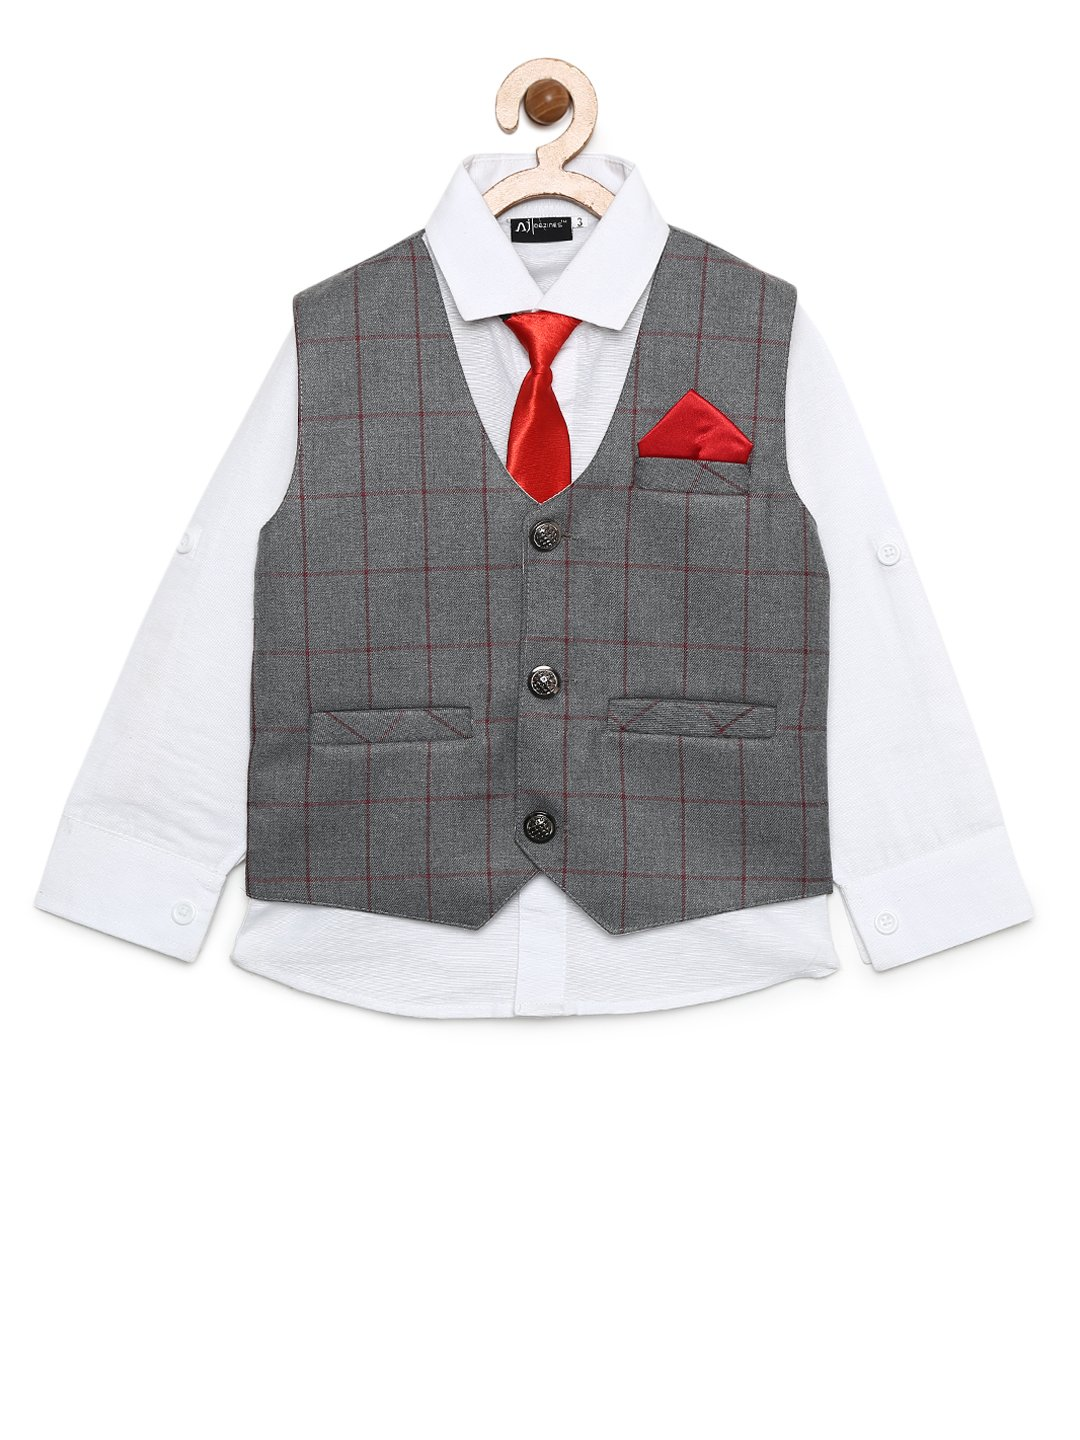 AJ Dezines Kids Indian wear Bollywood Style Shirt and Waistcoat Clothing Set for Boys (201-GREY-3)